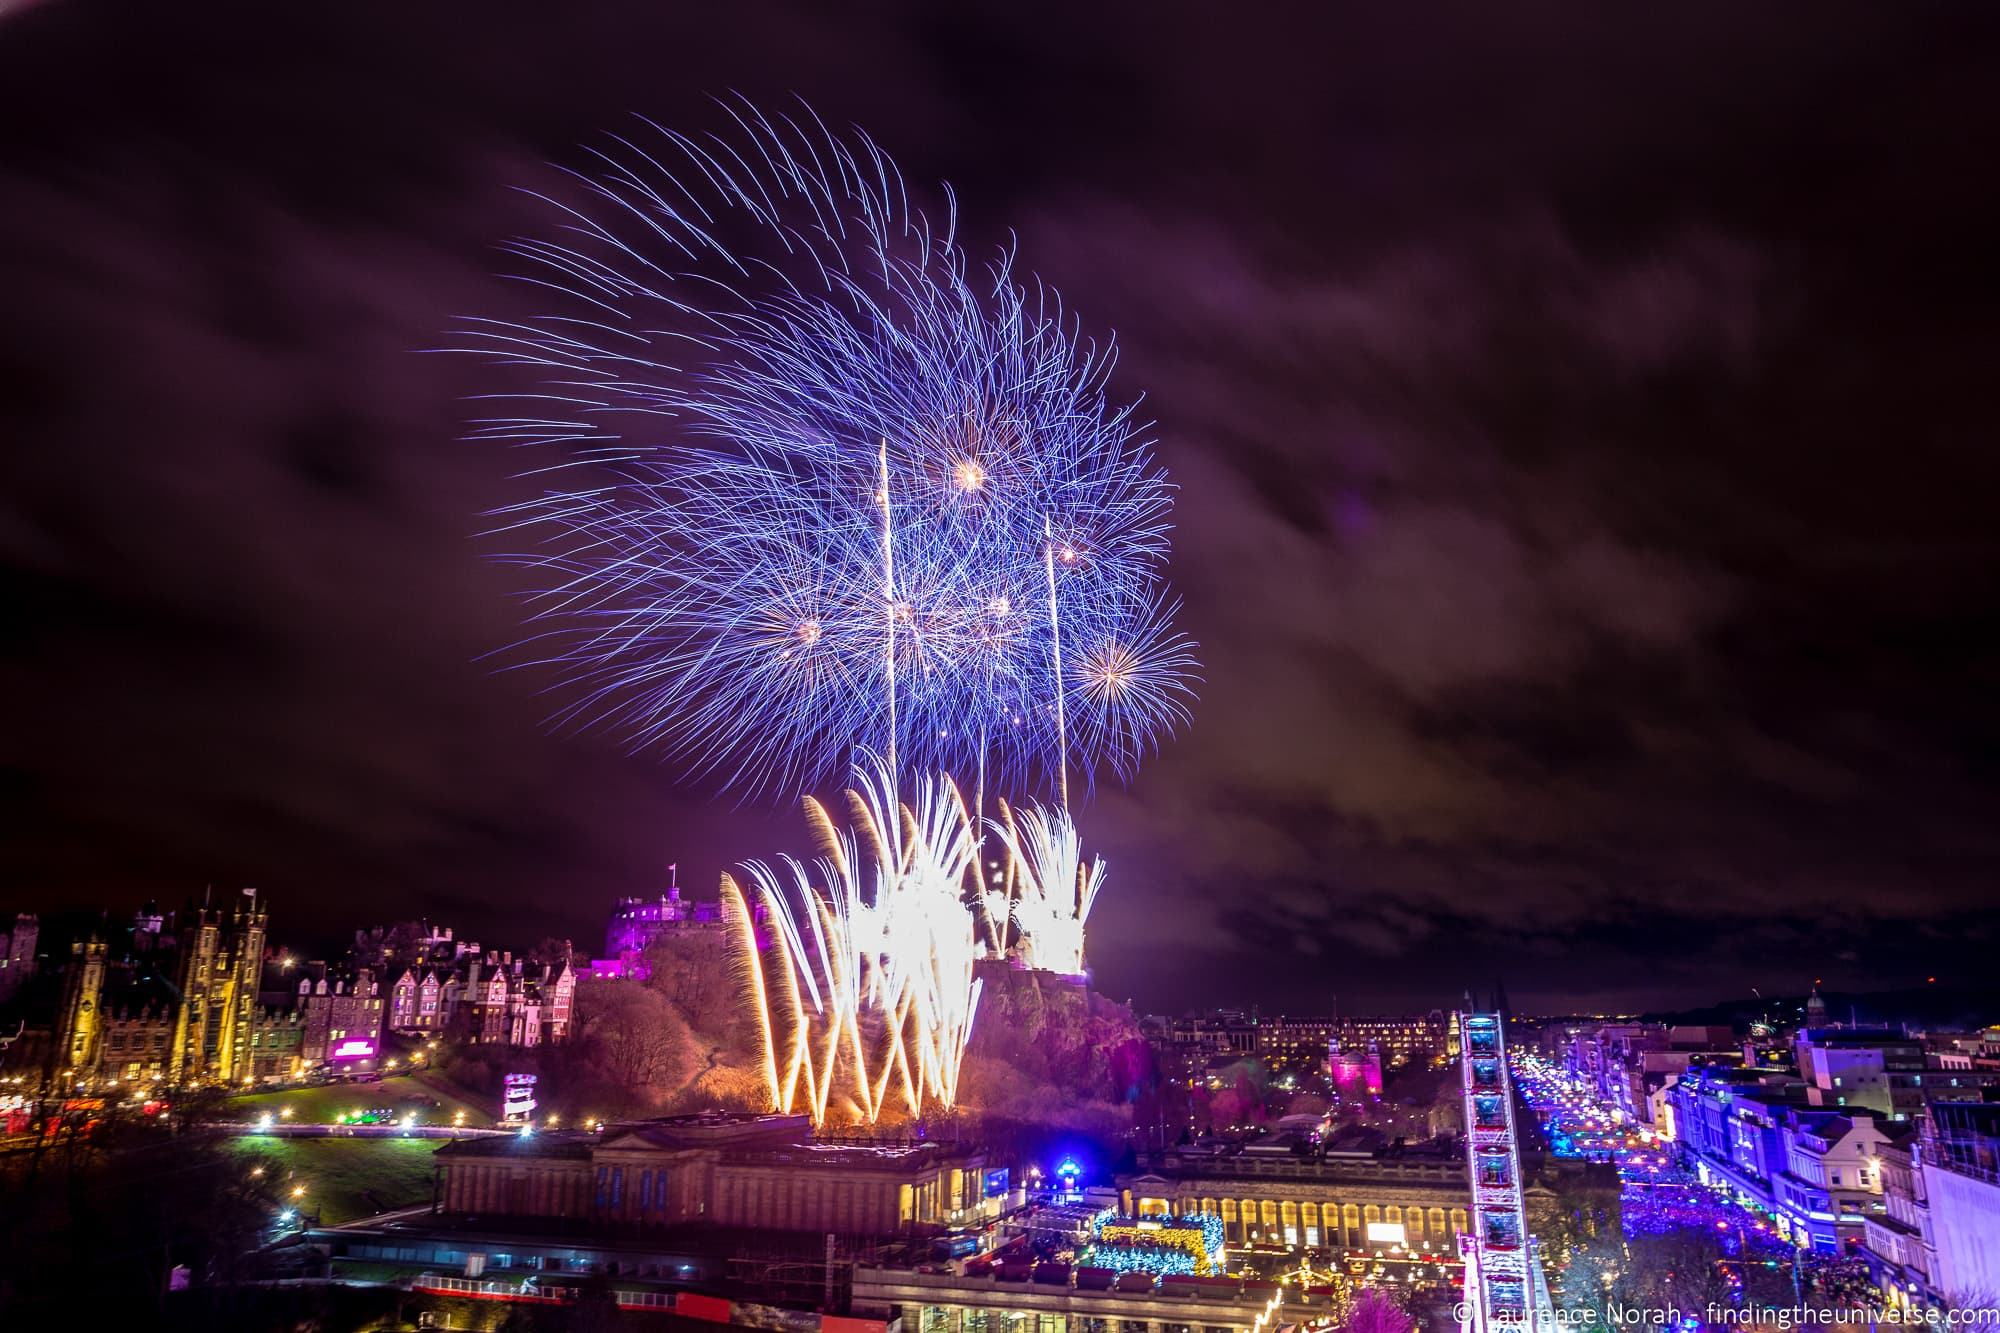 How to Photograph Fireworks: Everything You Need to Know to